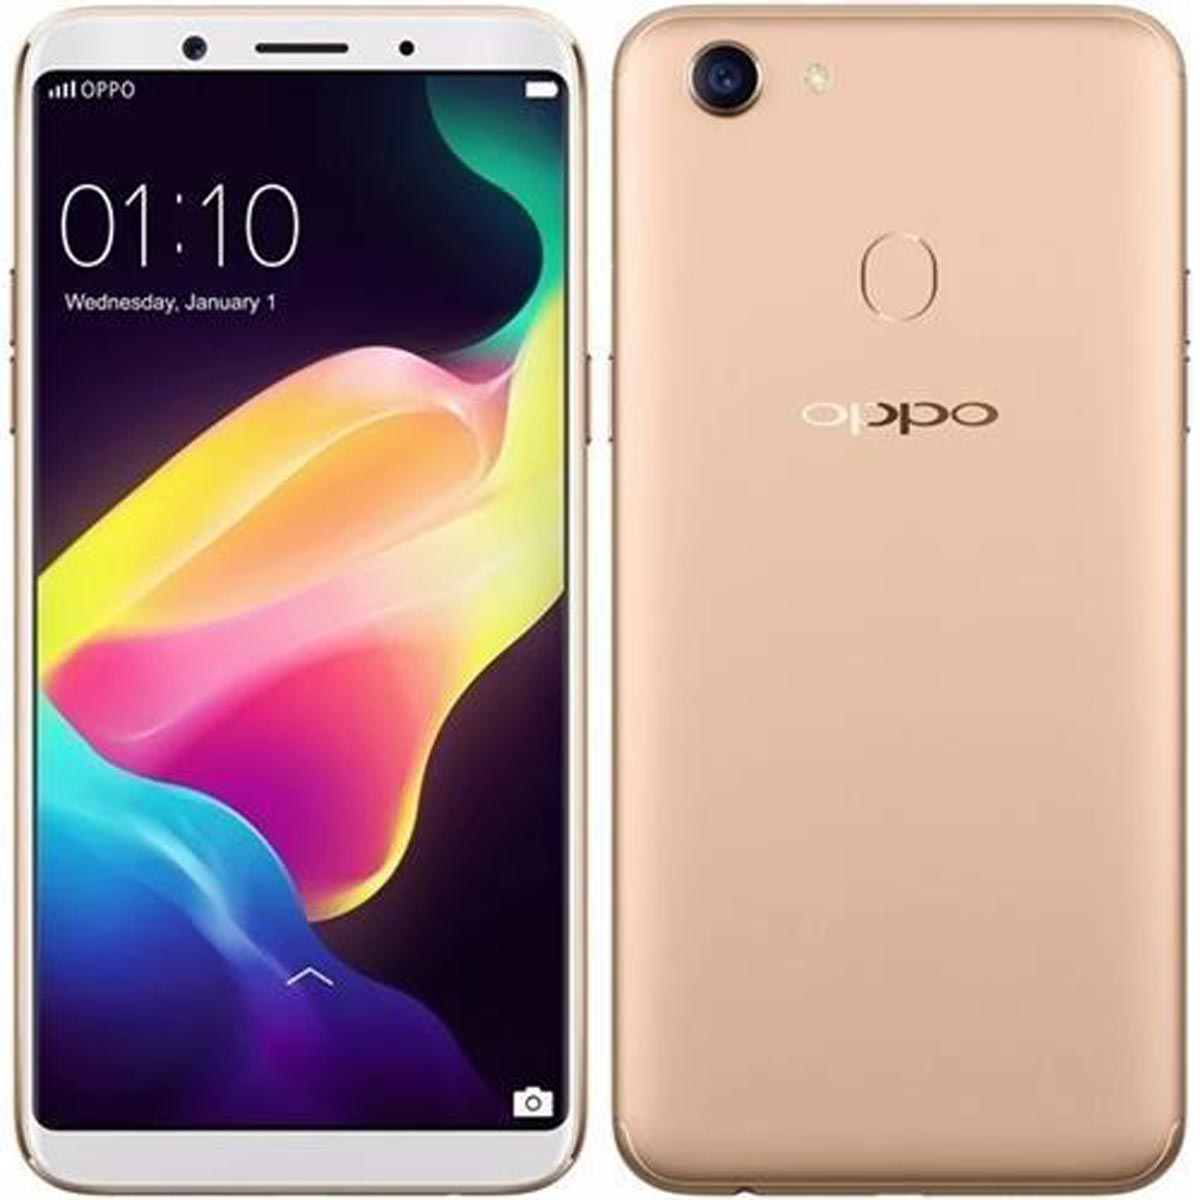 Oppo f5 capture real 32gb rom 4gb ram set mobile2go 1711 11 mobile2go 2